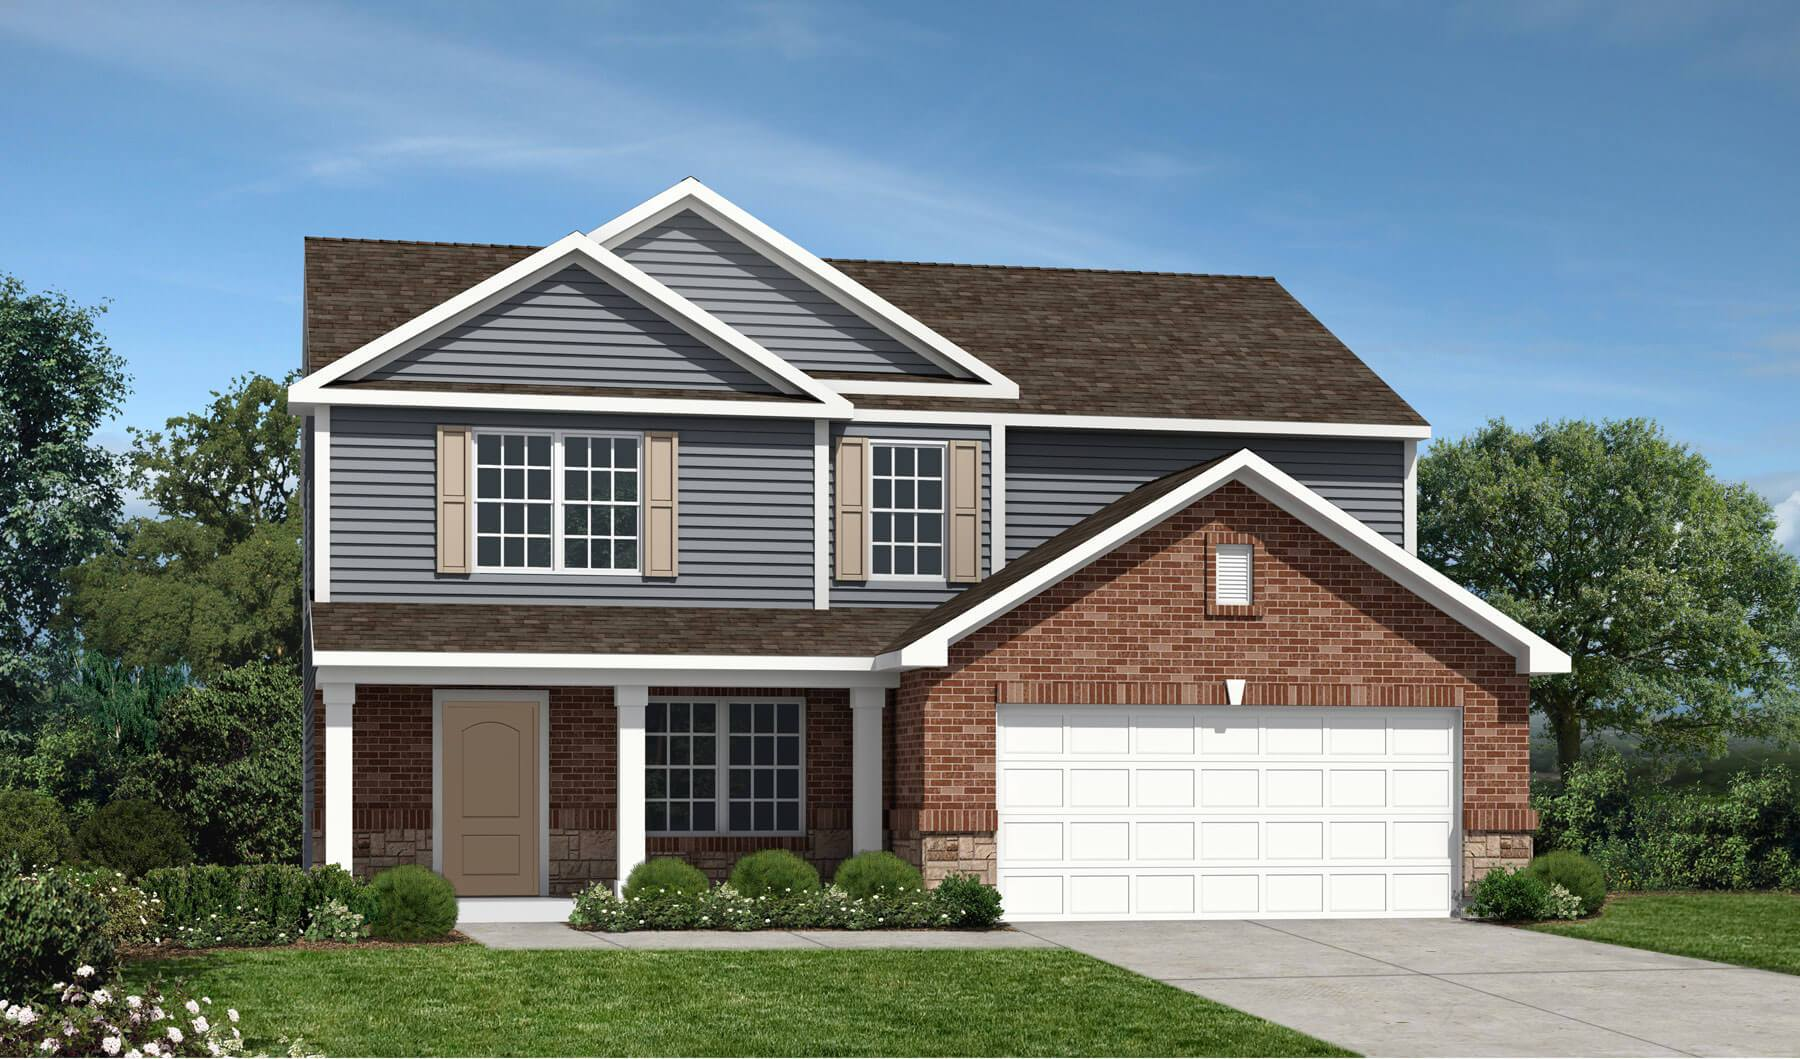 Westport Homes Of Indianapolis Sawmill Monterey 1351496 Greenfield In New Home For Sale